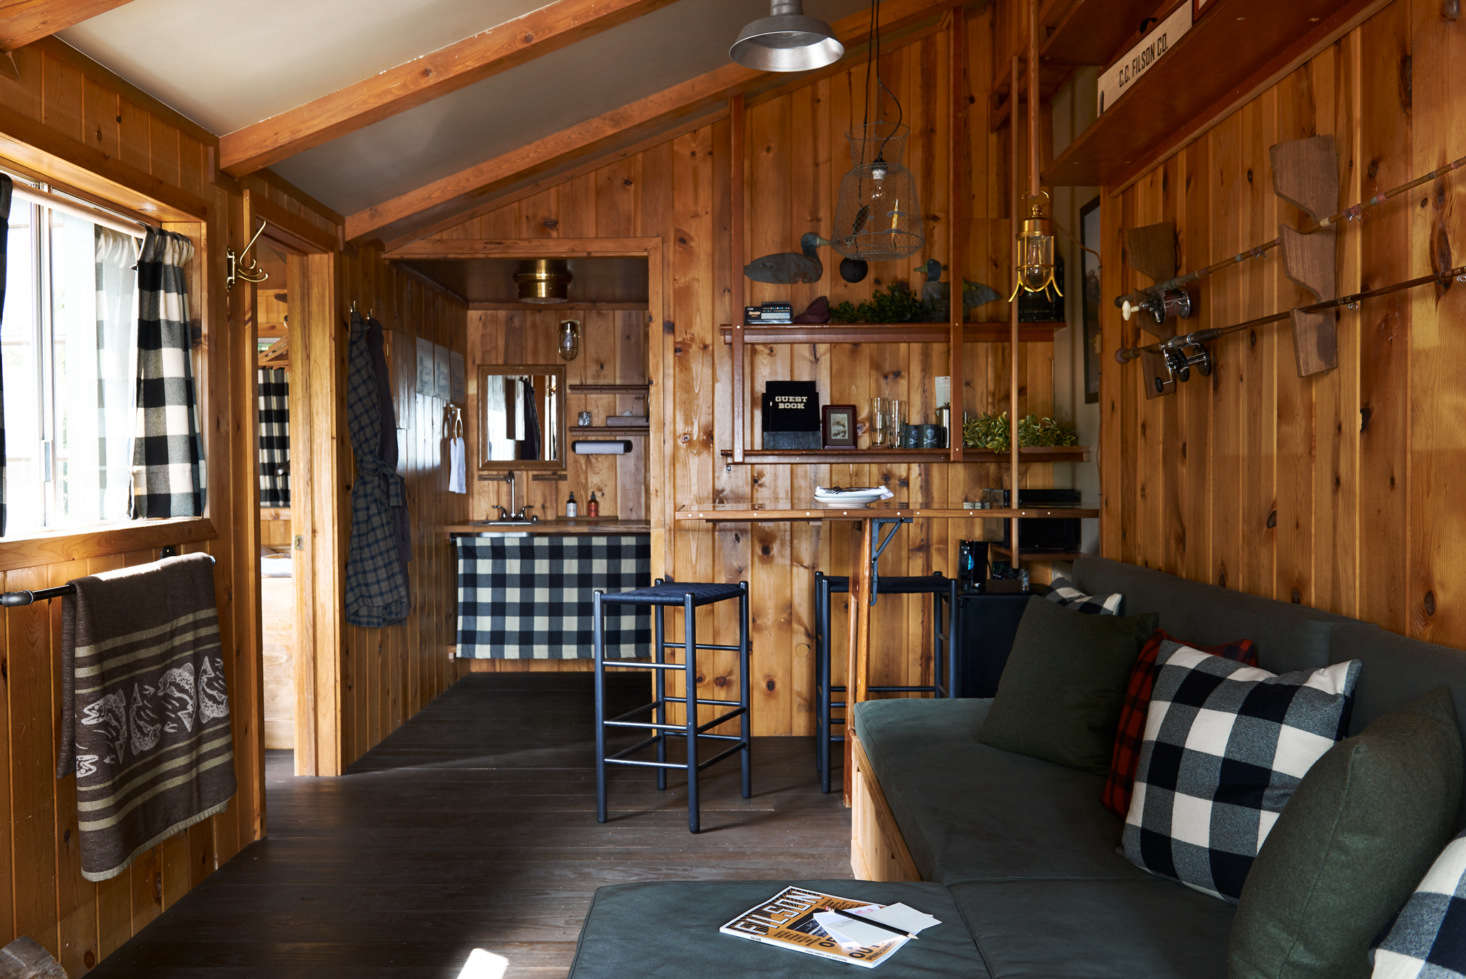 The sitting area of the Filson-decorated cabin.